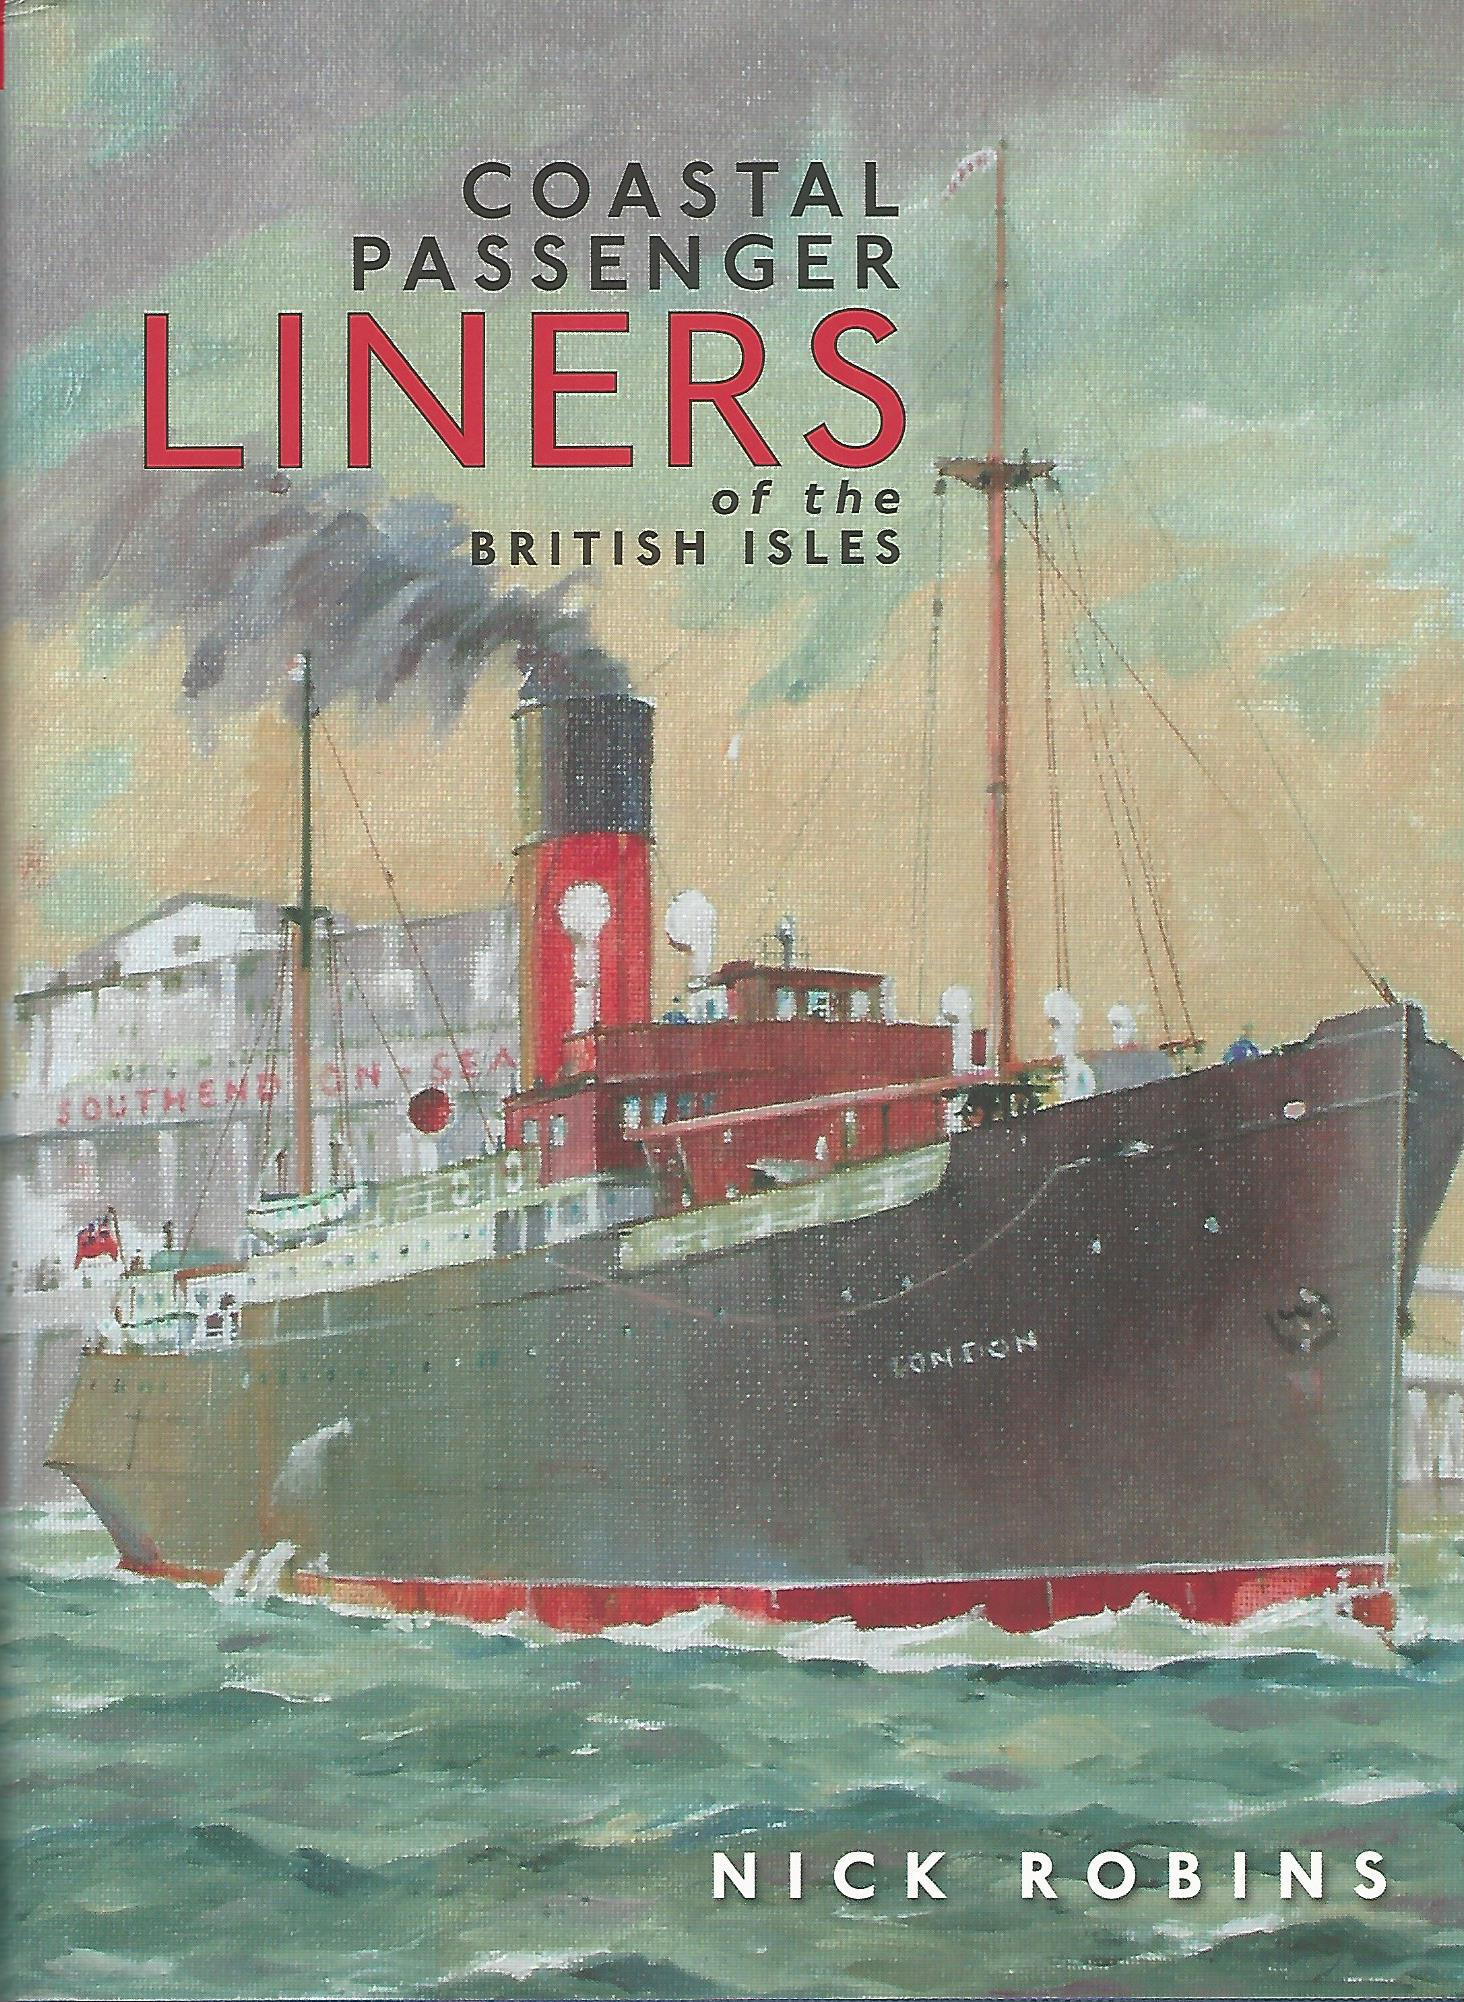 Image for Coastal Passenger Liners of the British Isles.